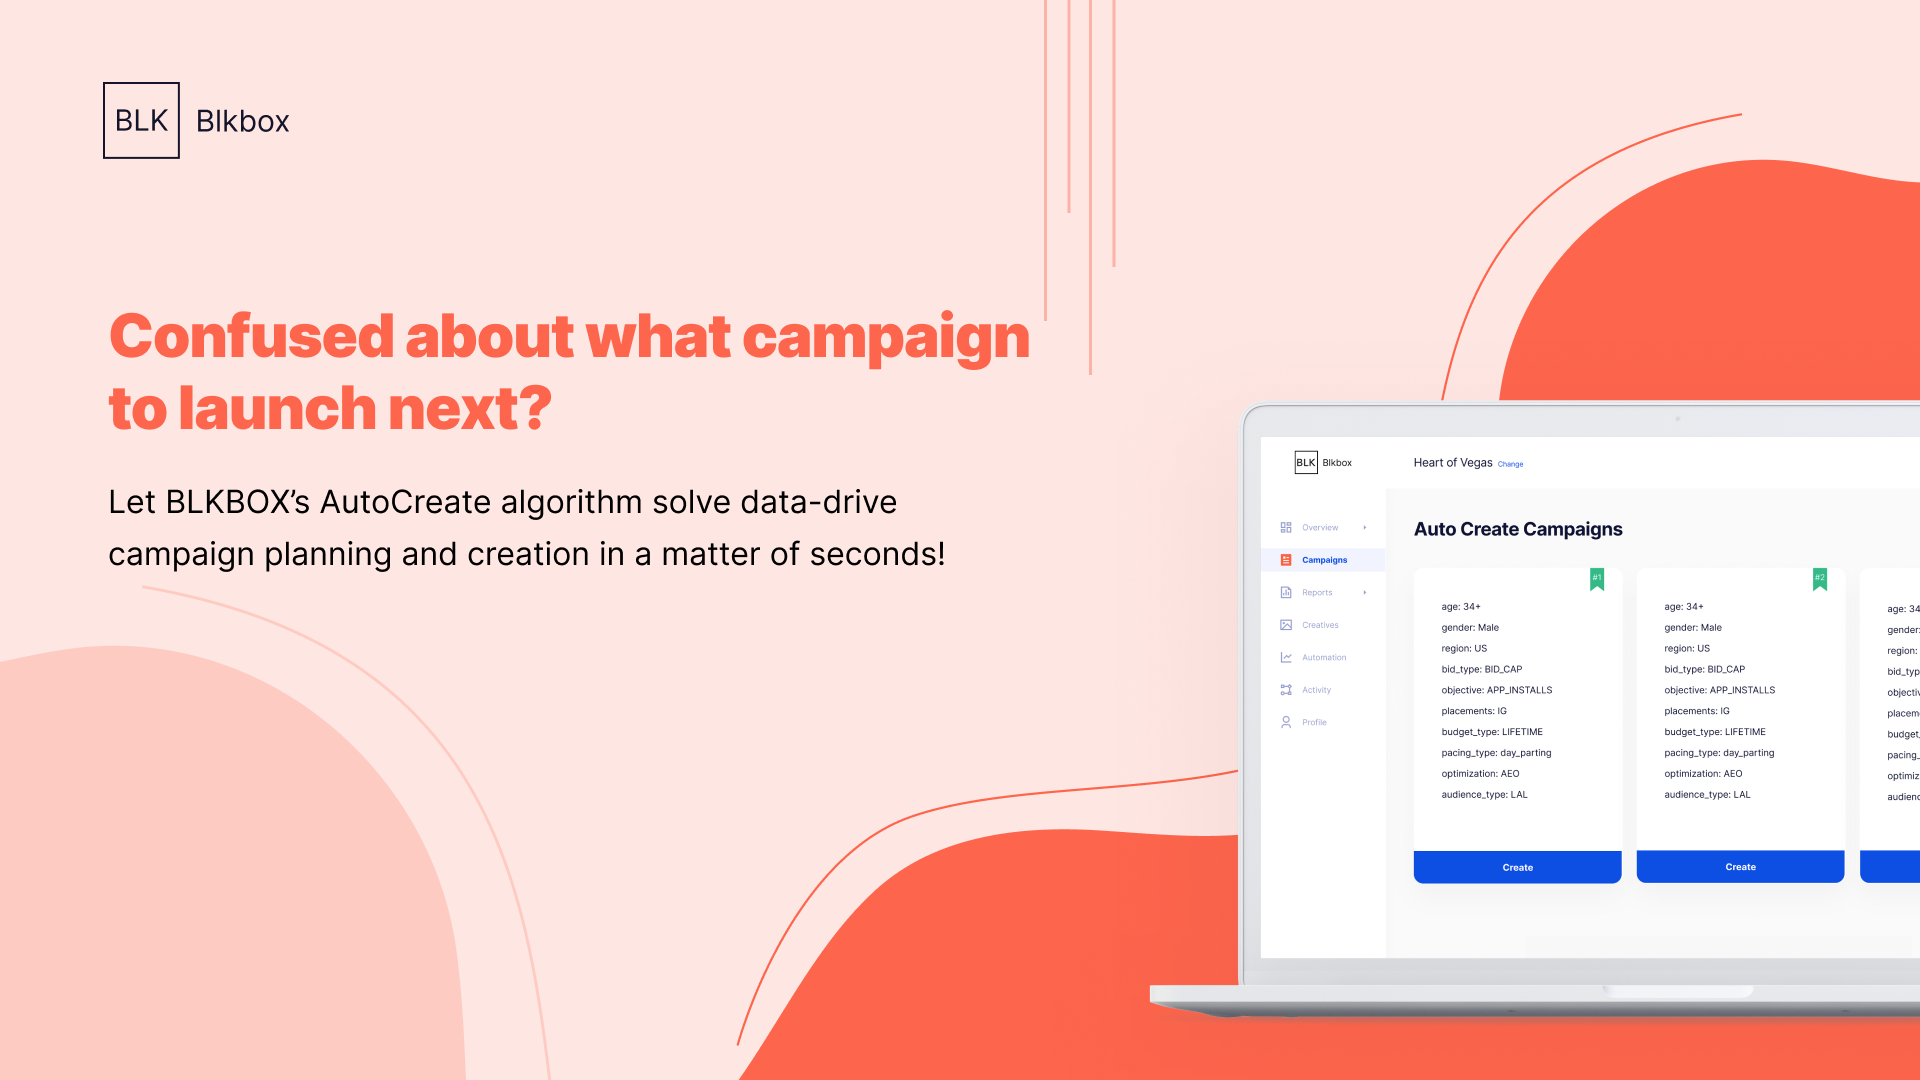 BLKBOX automates campaign creation, audiences, creative testing and much more.